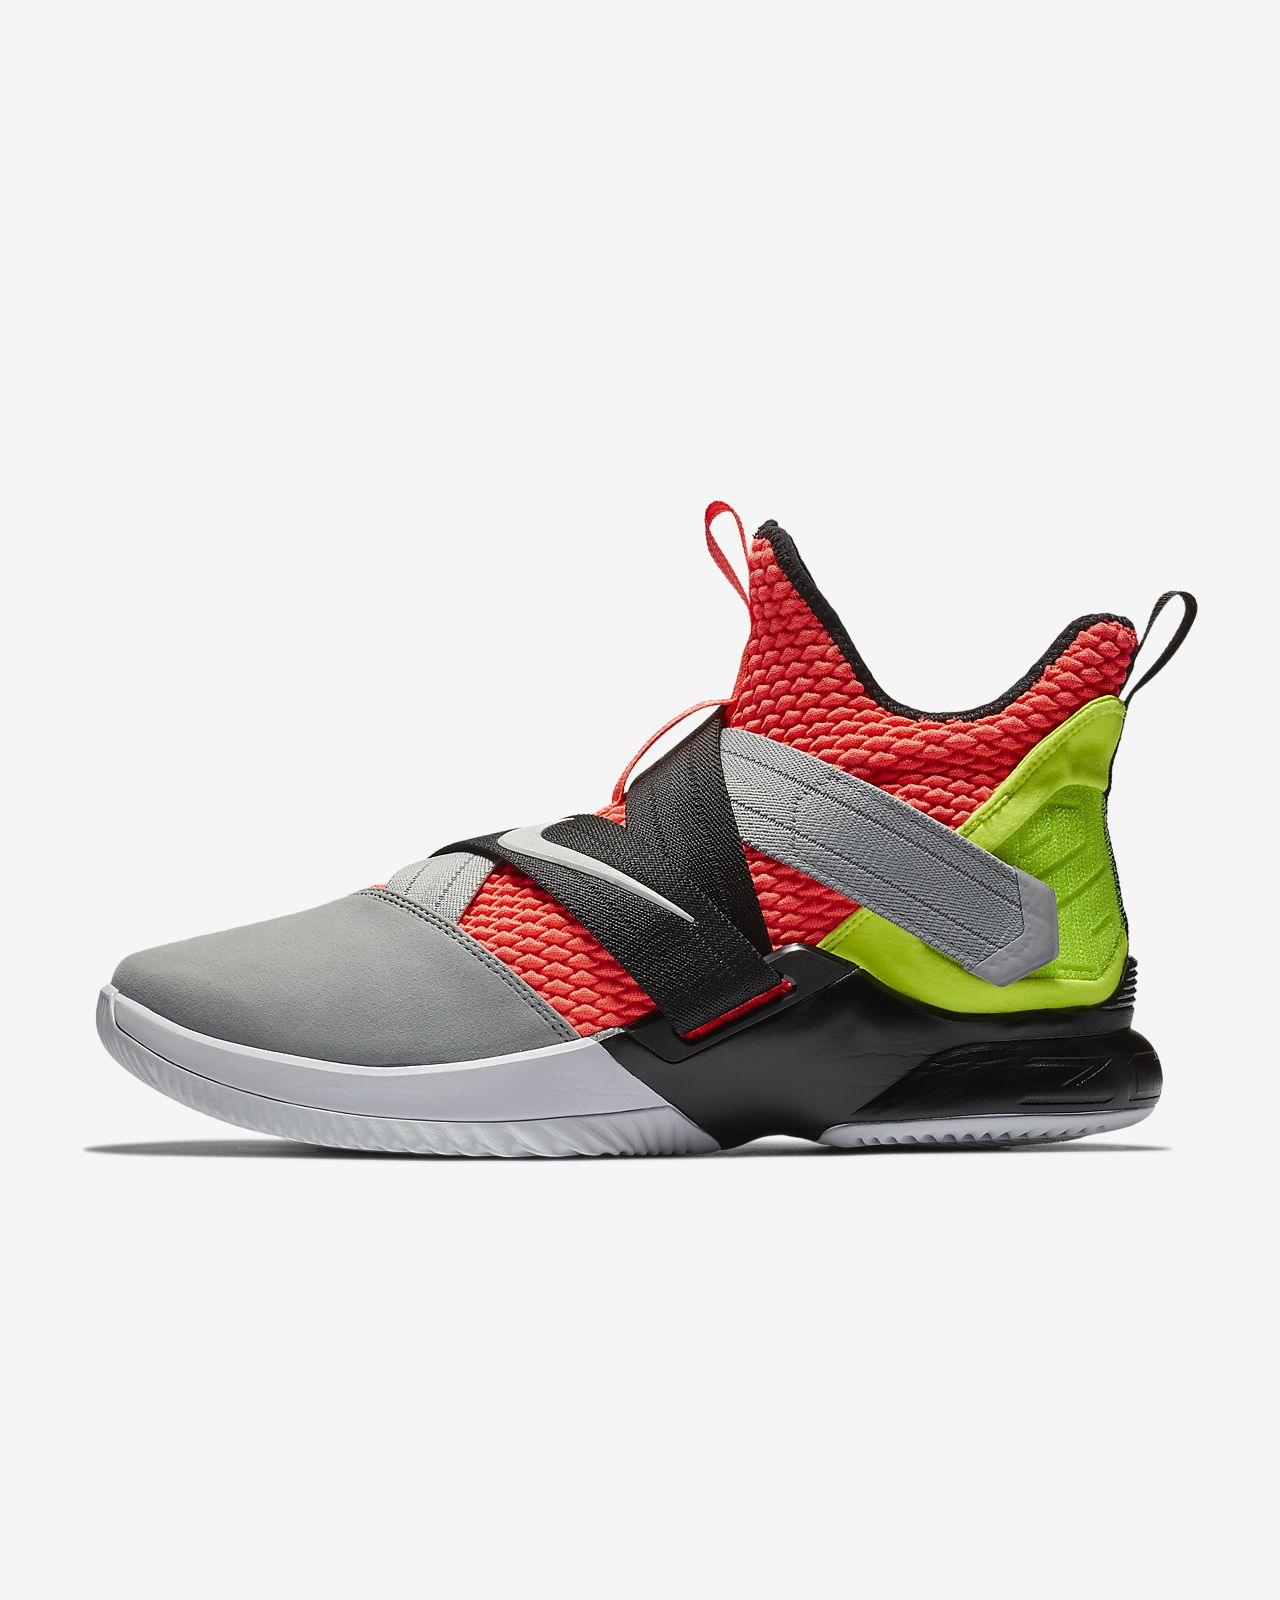 timeless design 03f30 8eecc LeBron Soldier 12 SFG Basketball Shoe